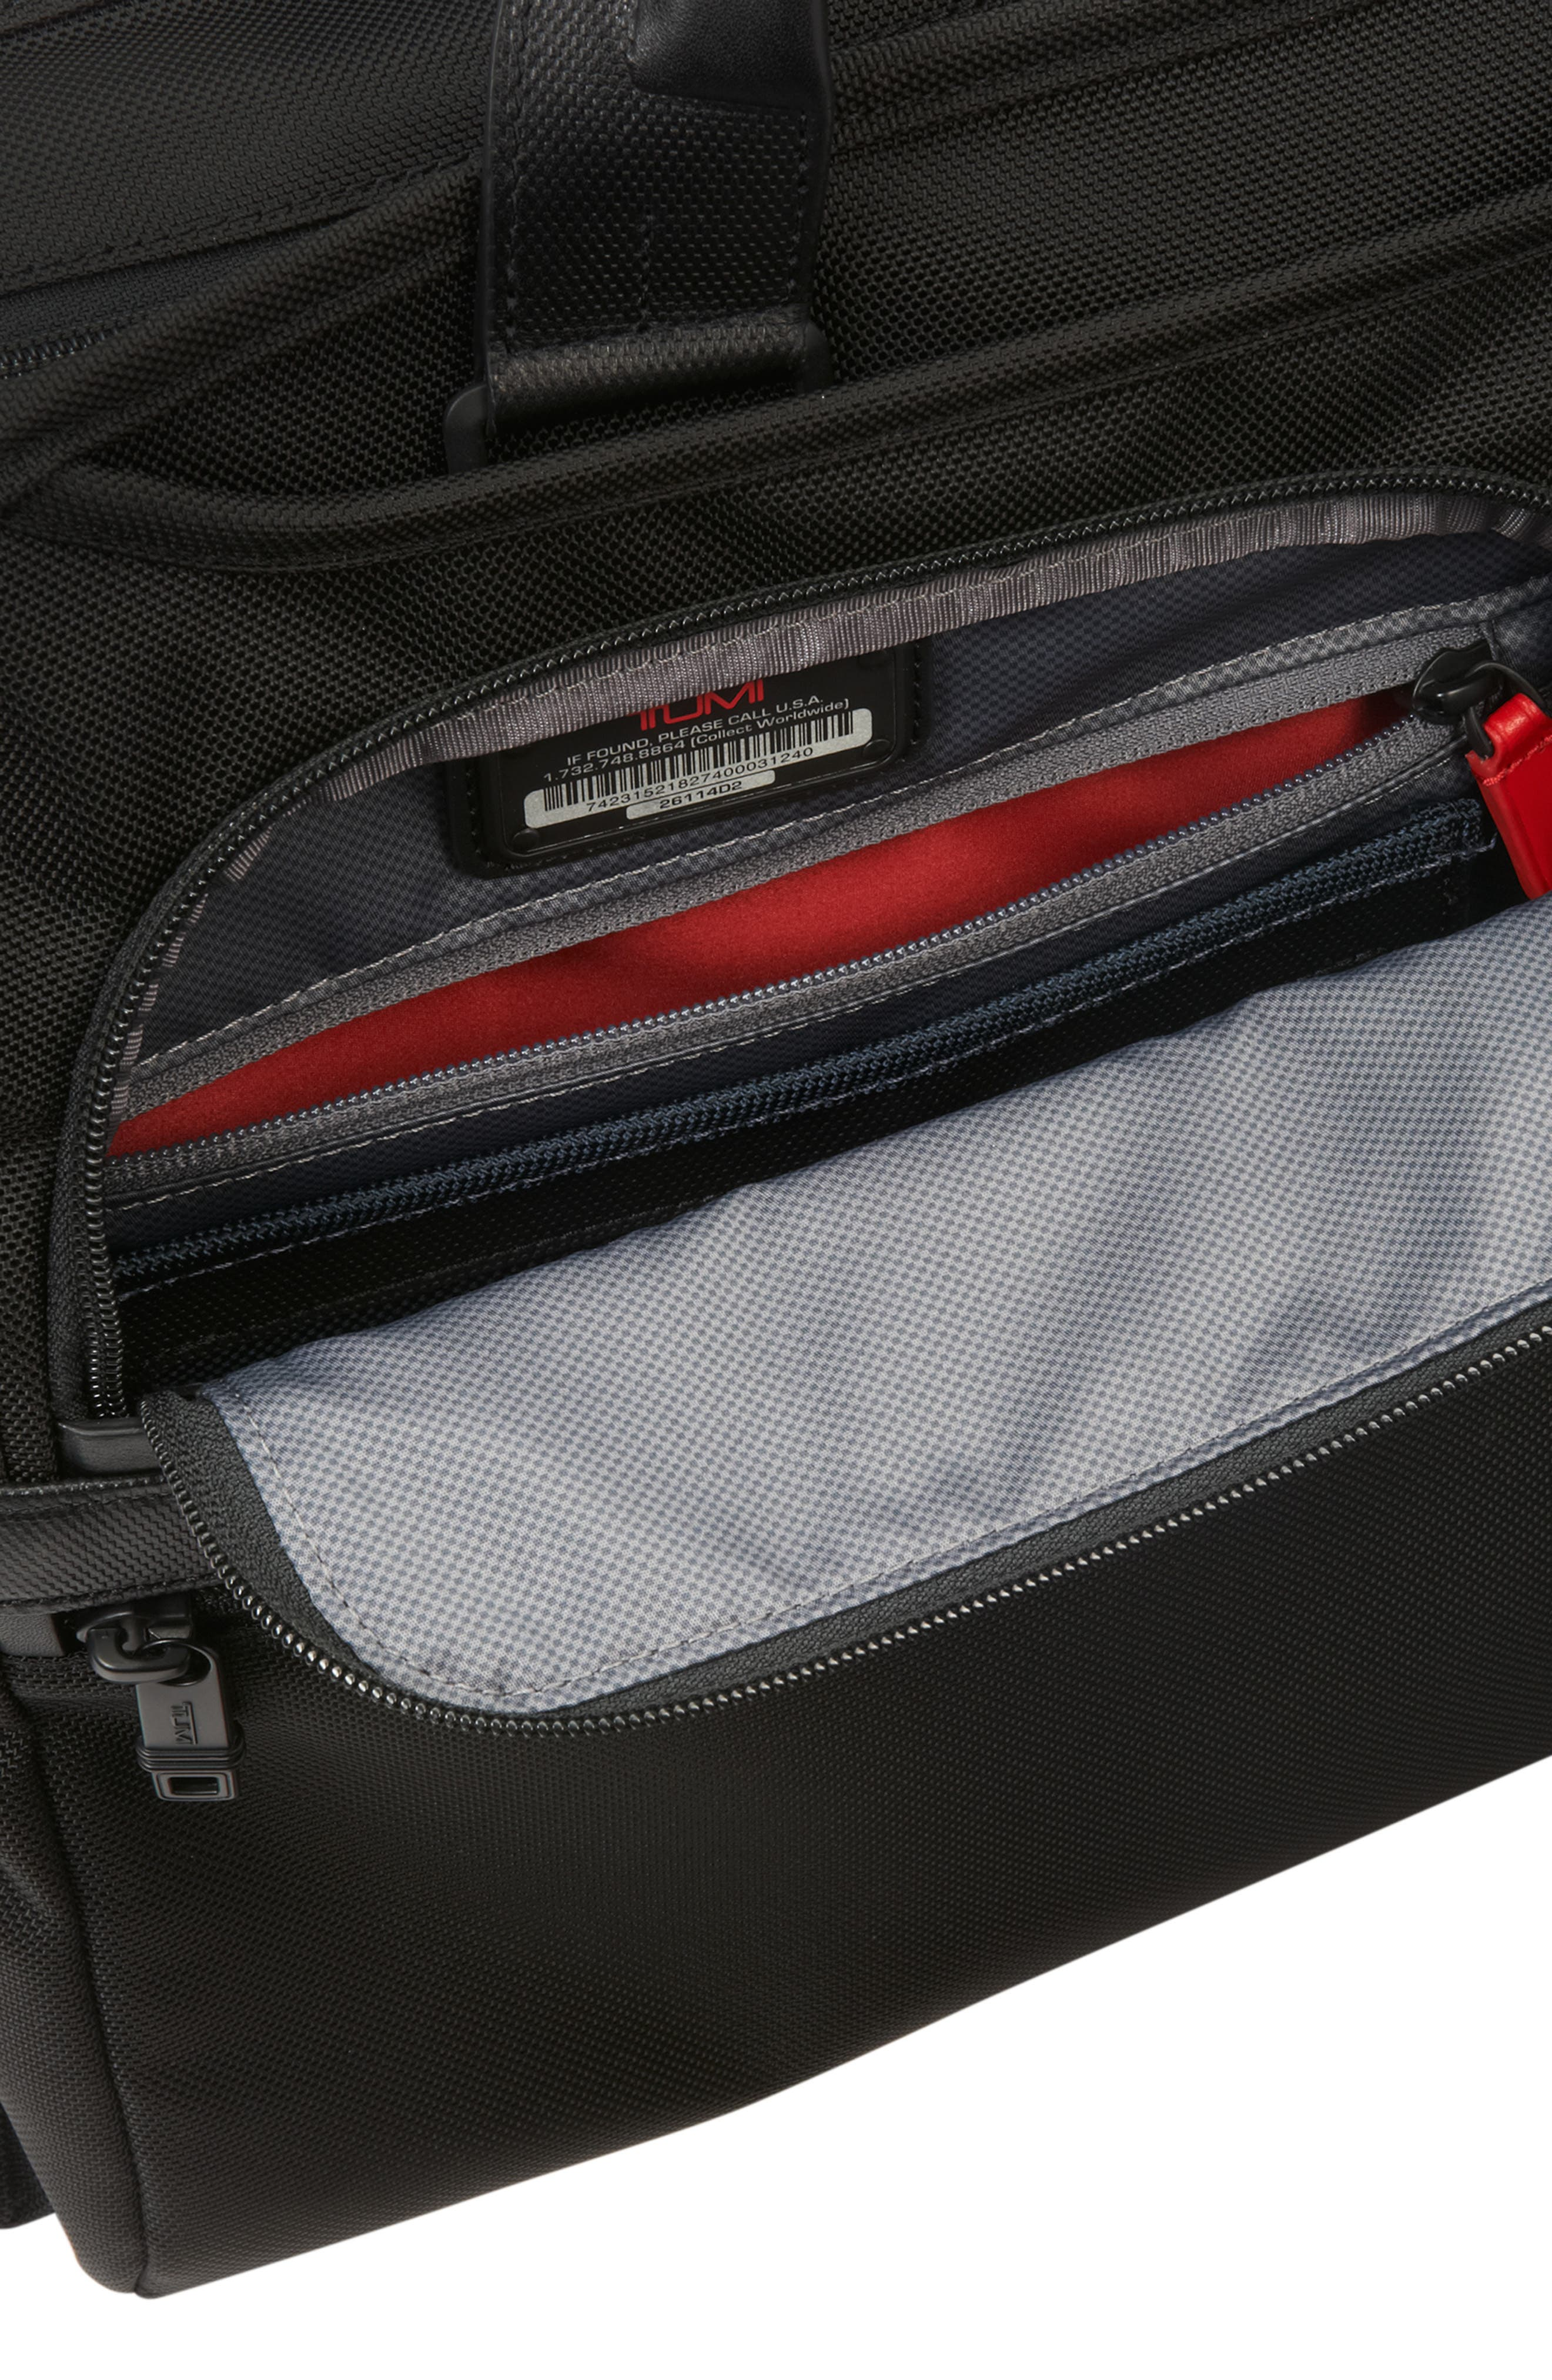 Alpha 2 Laptop Briefcase with Tumi ID Lock Pocket,                             Alternate thumbnail 5, color,                             BLACK